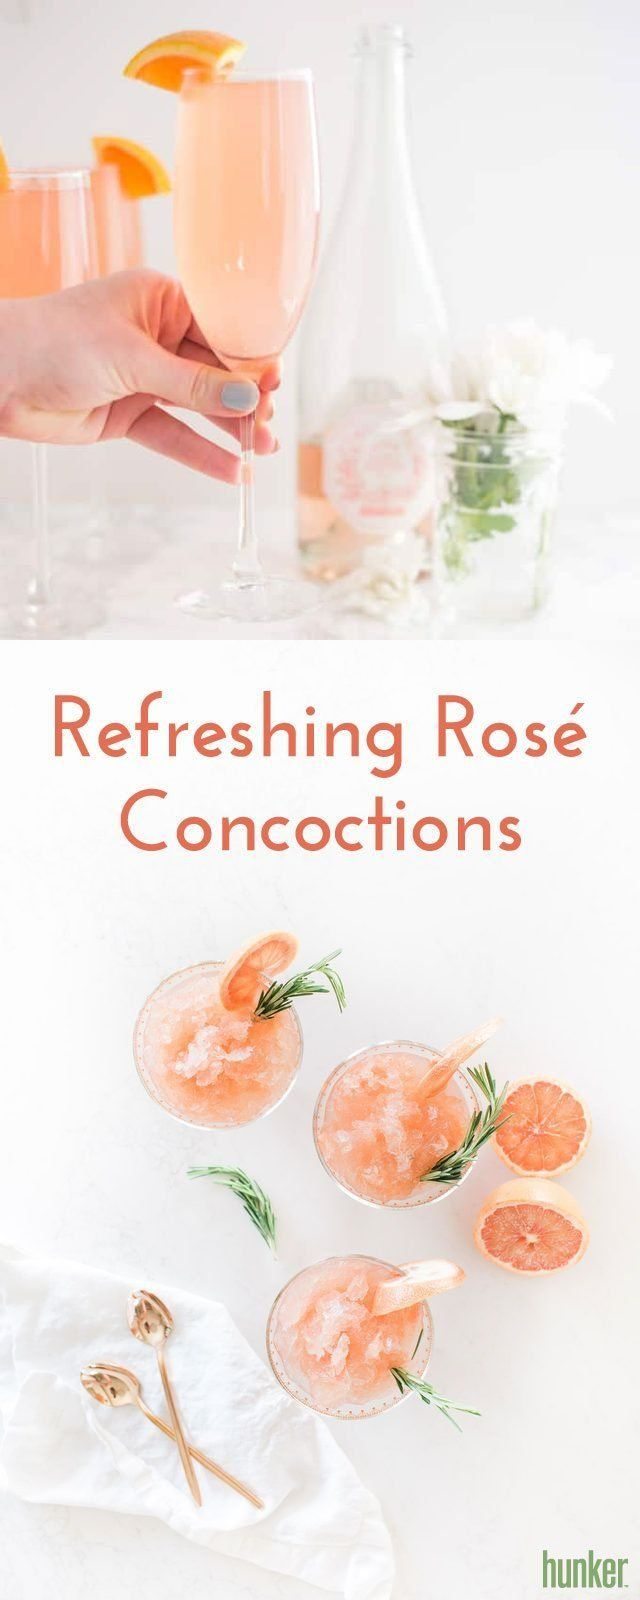 We Will Happily Rosé All Day With These Refreshing Concoctions